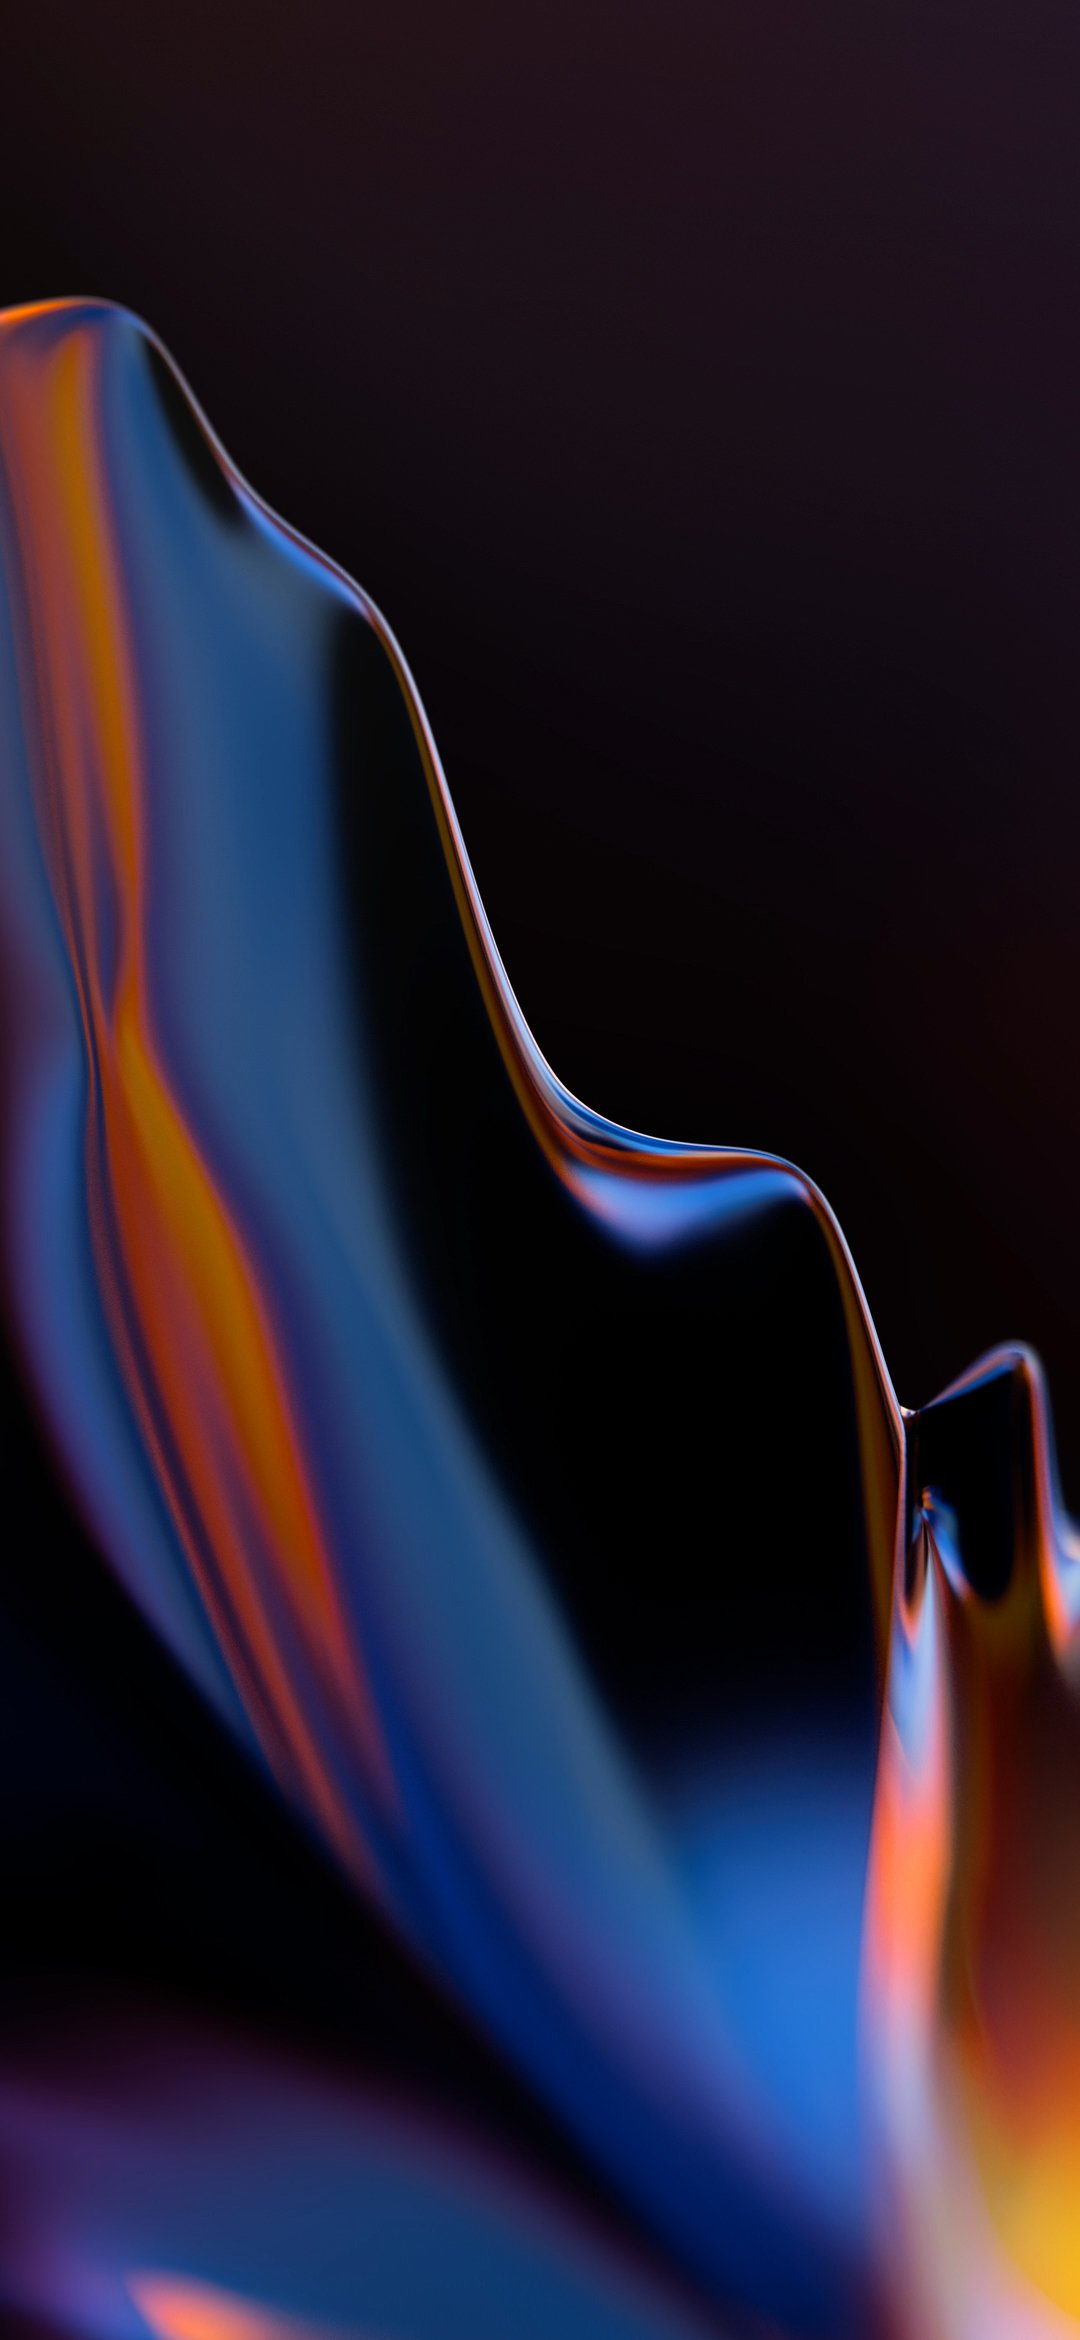 Oneplus 6t Wallpapers Fhd 4k Never Settle Download